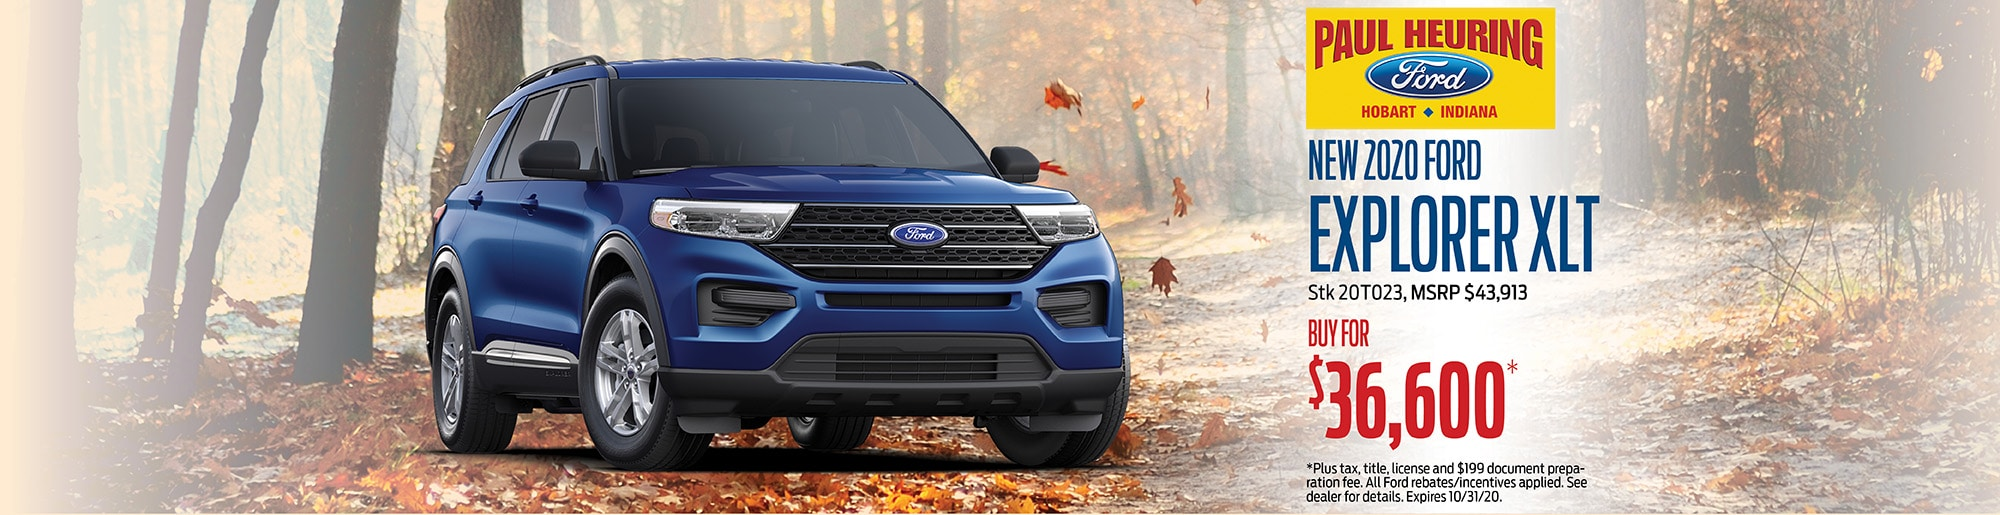 2020 Ford Explorer XLT, Buy for $36,000 | Hobart, IN